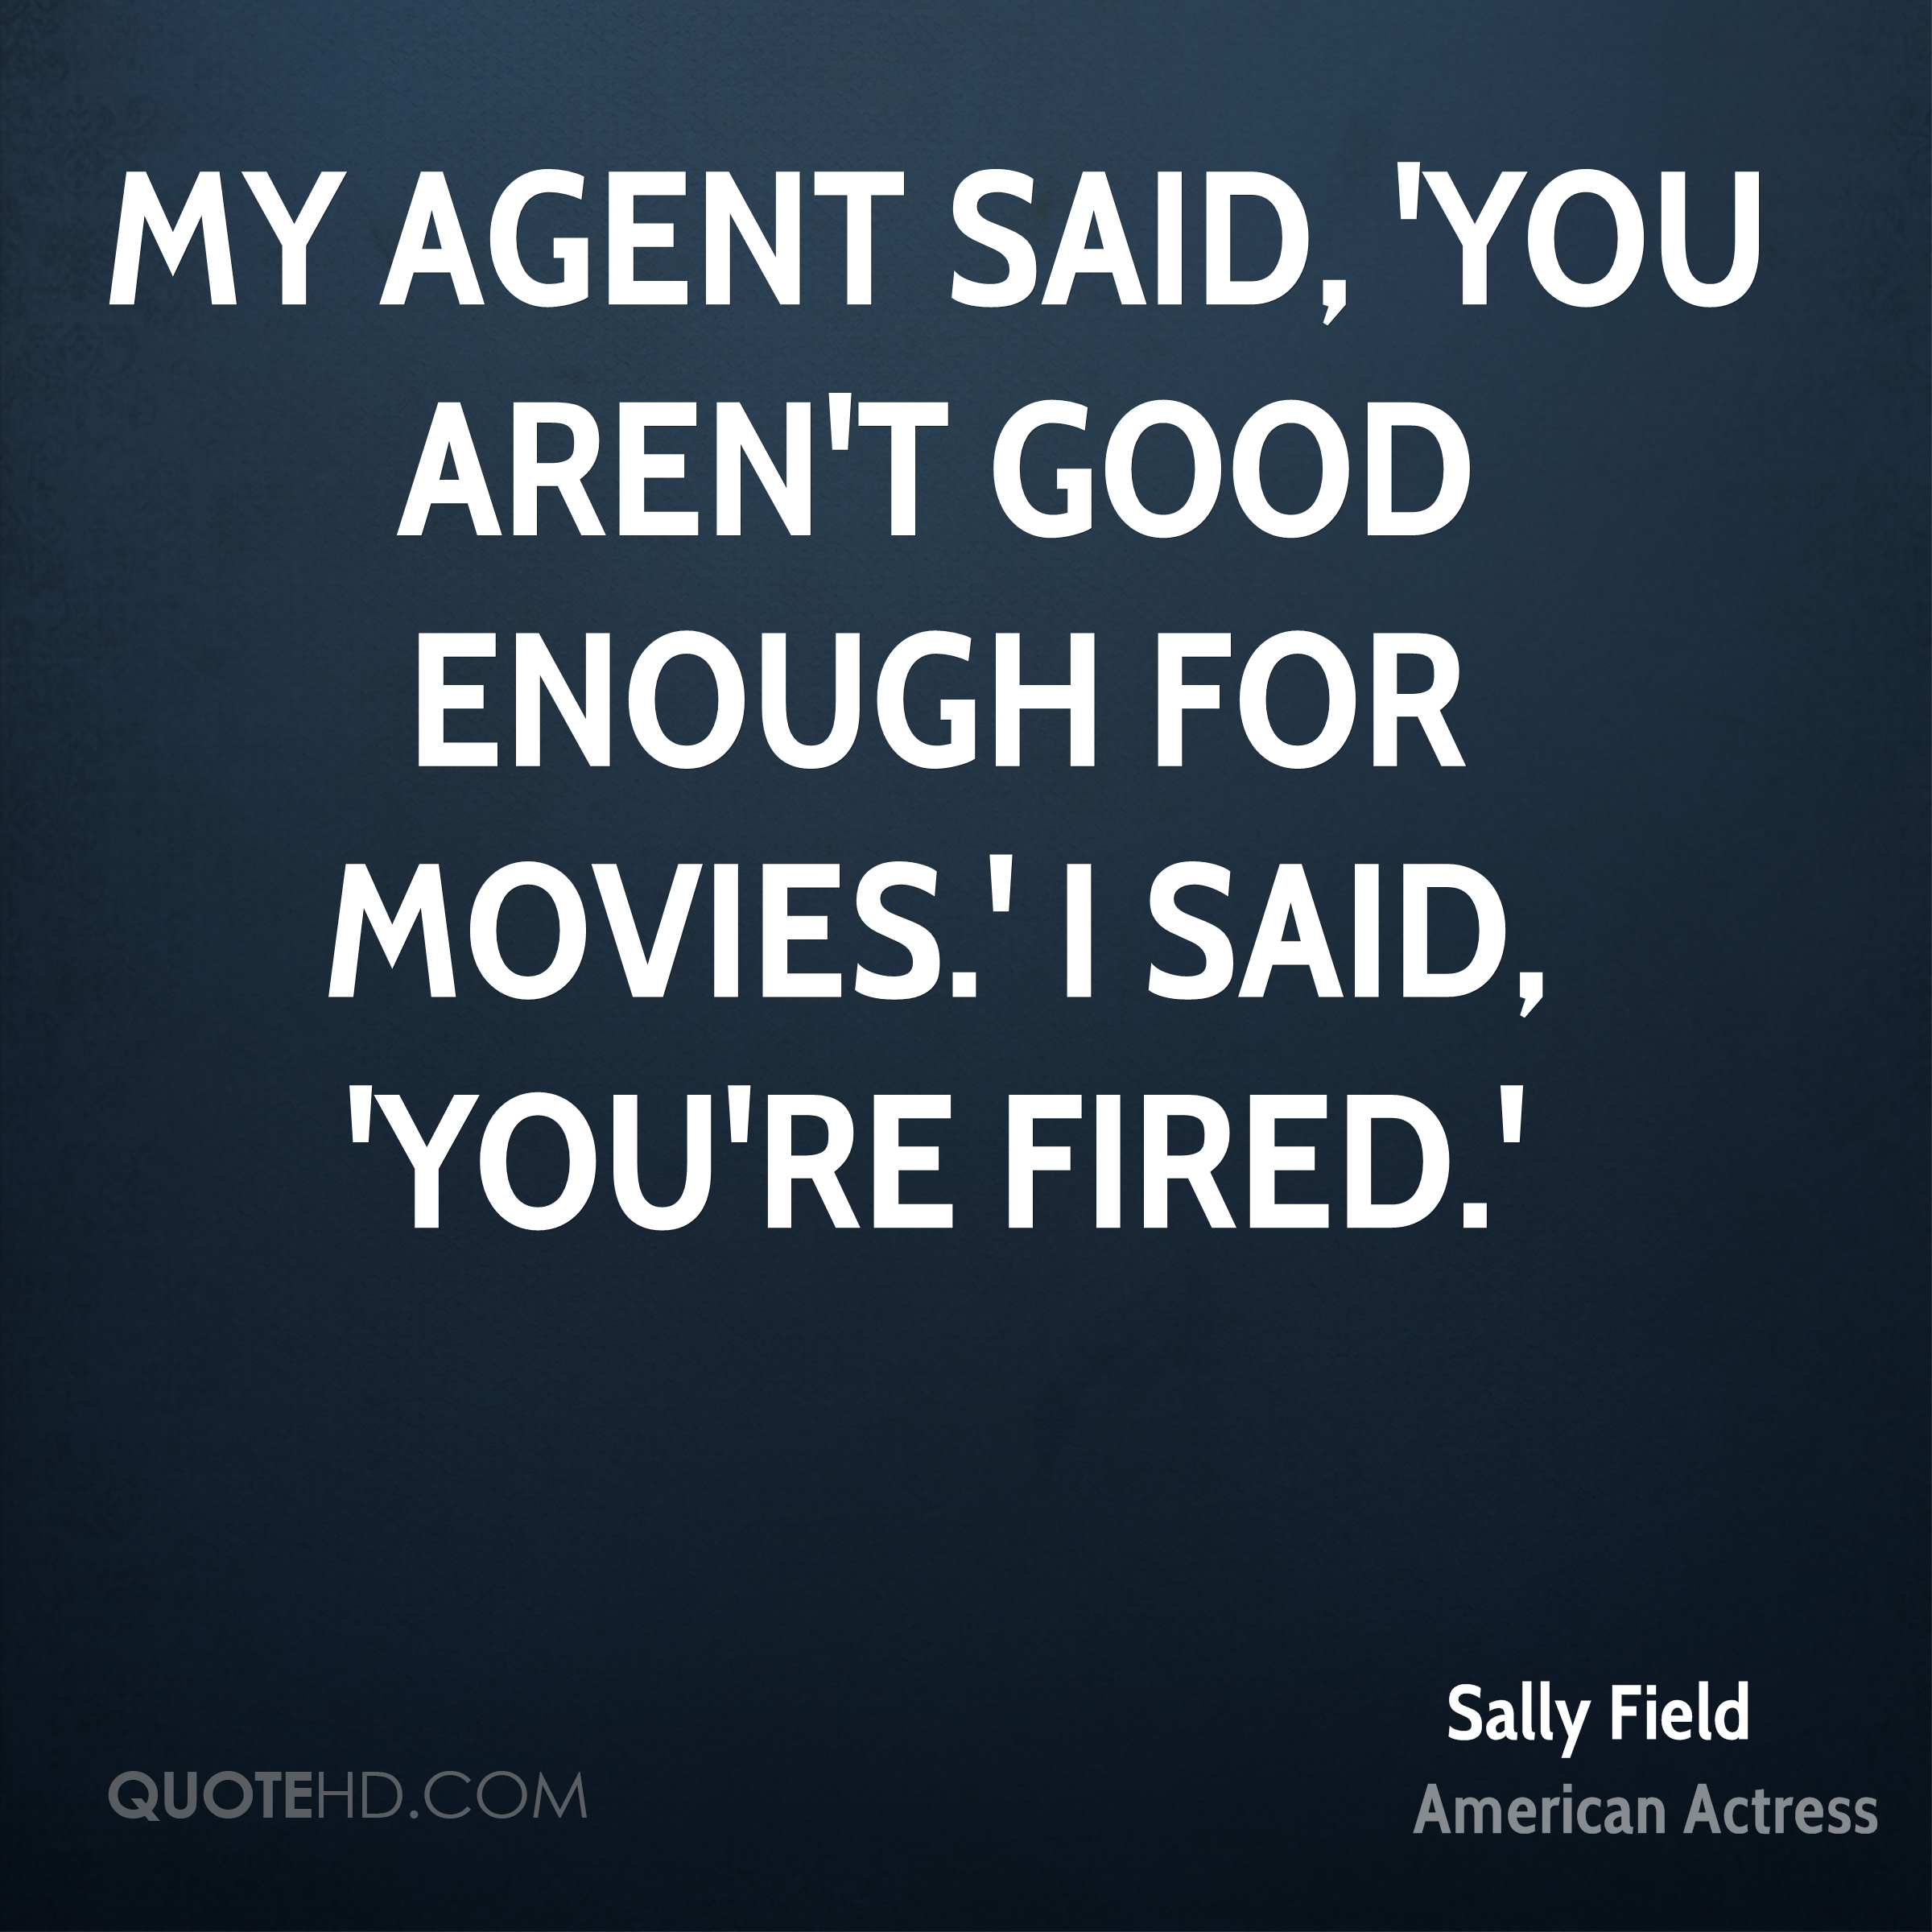 My agent said, 'You aren't good enough for movies.' I said, 'You're fired.'